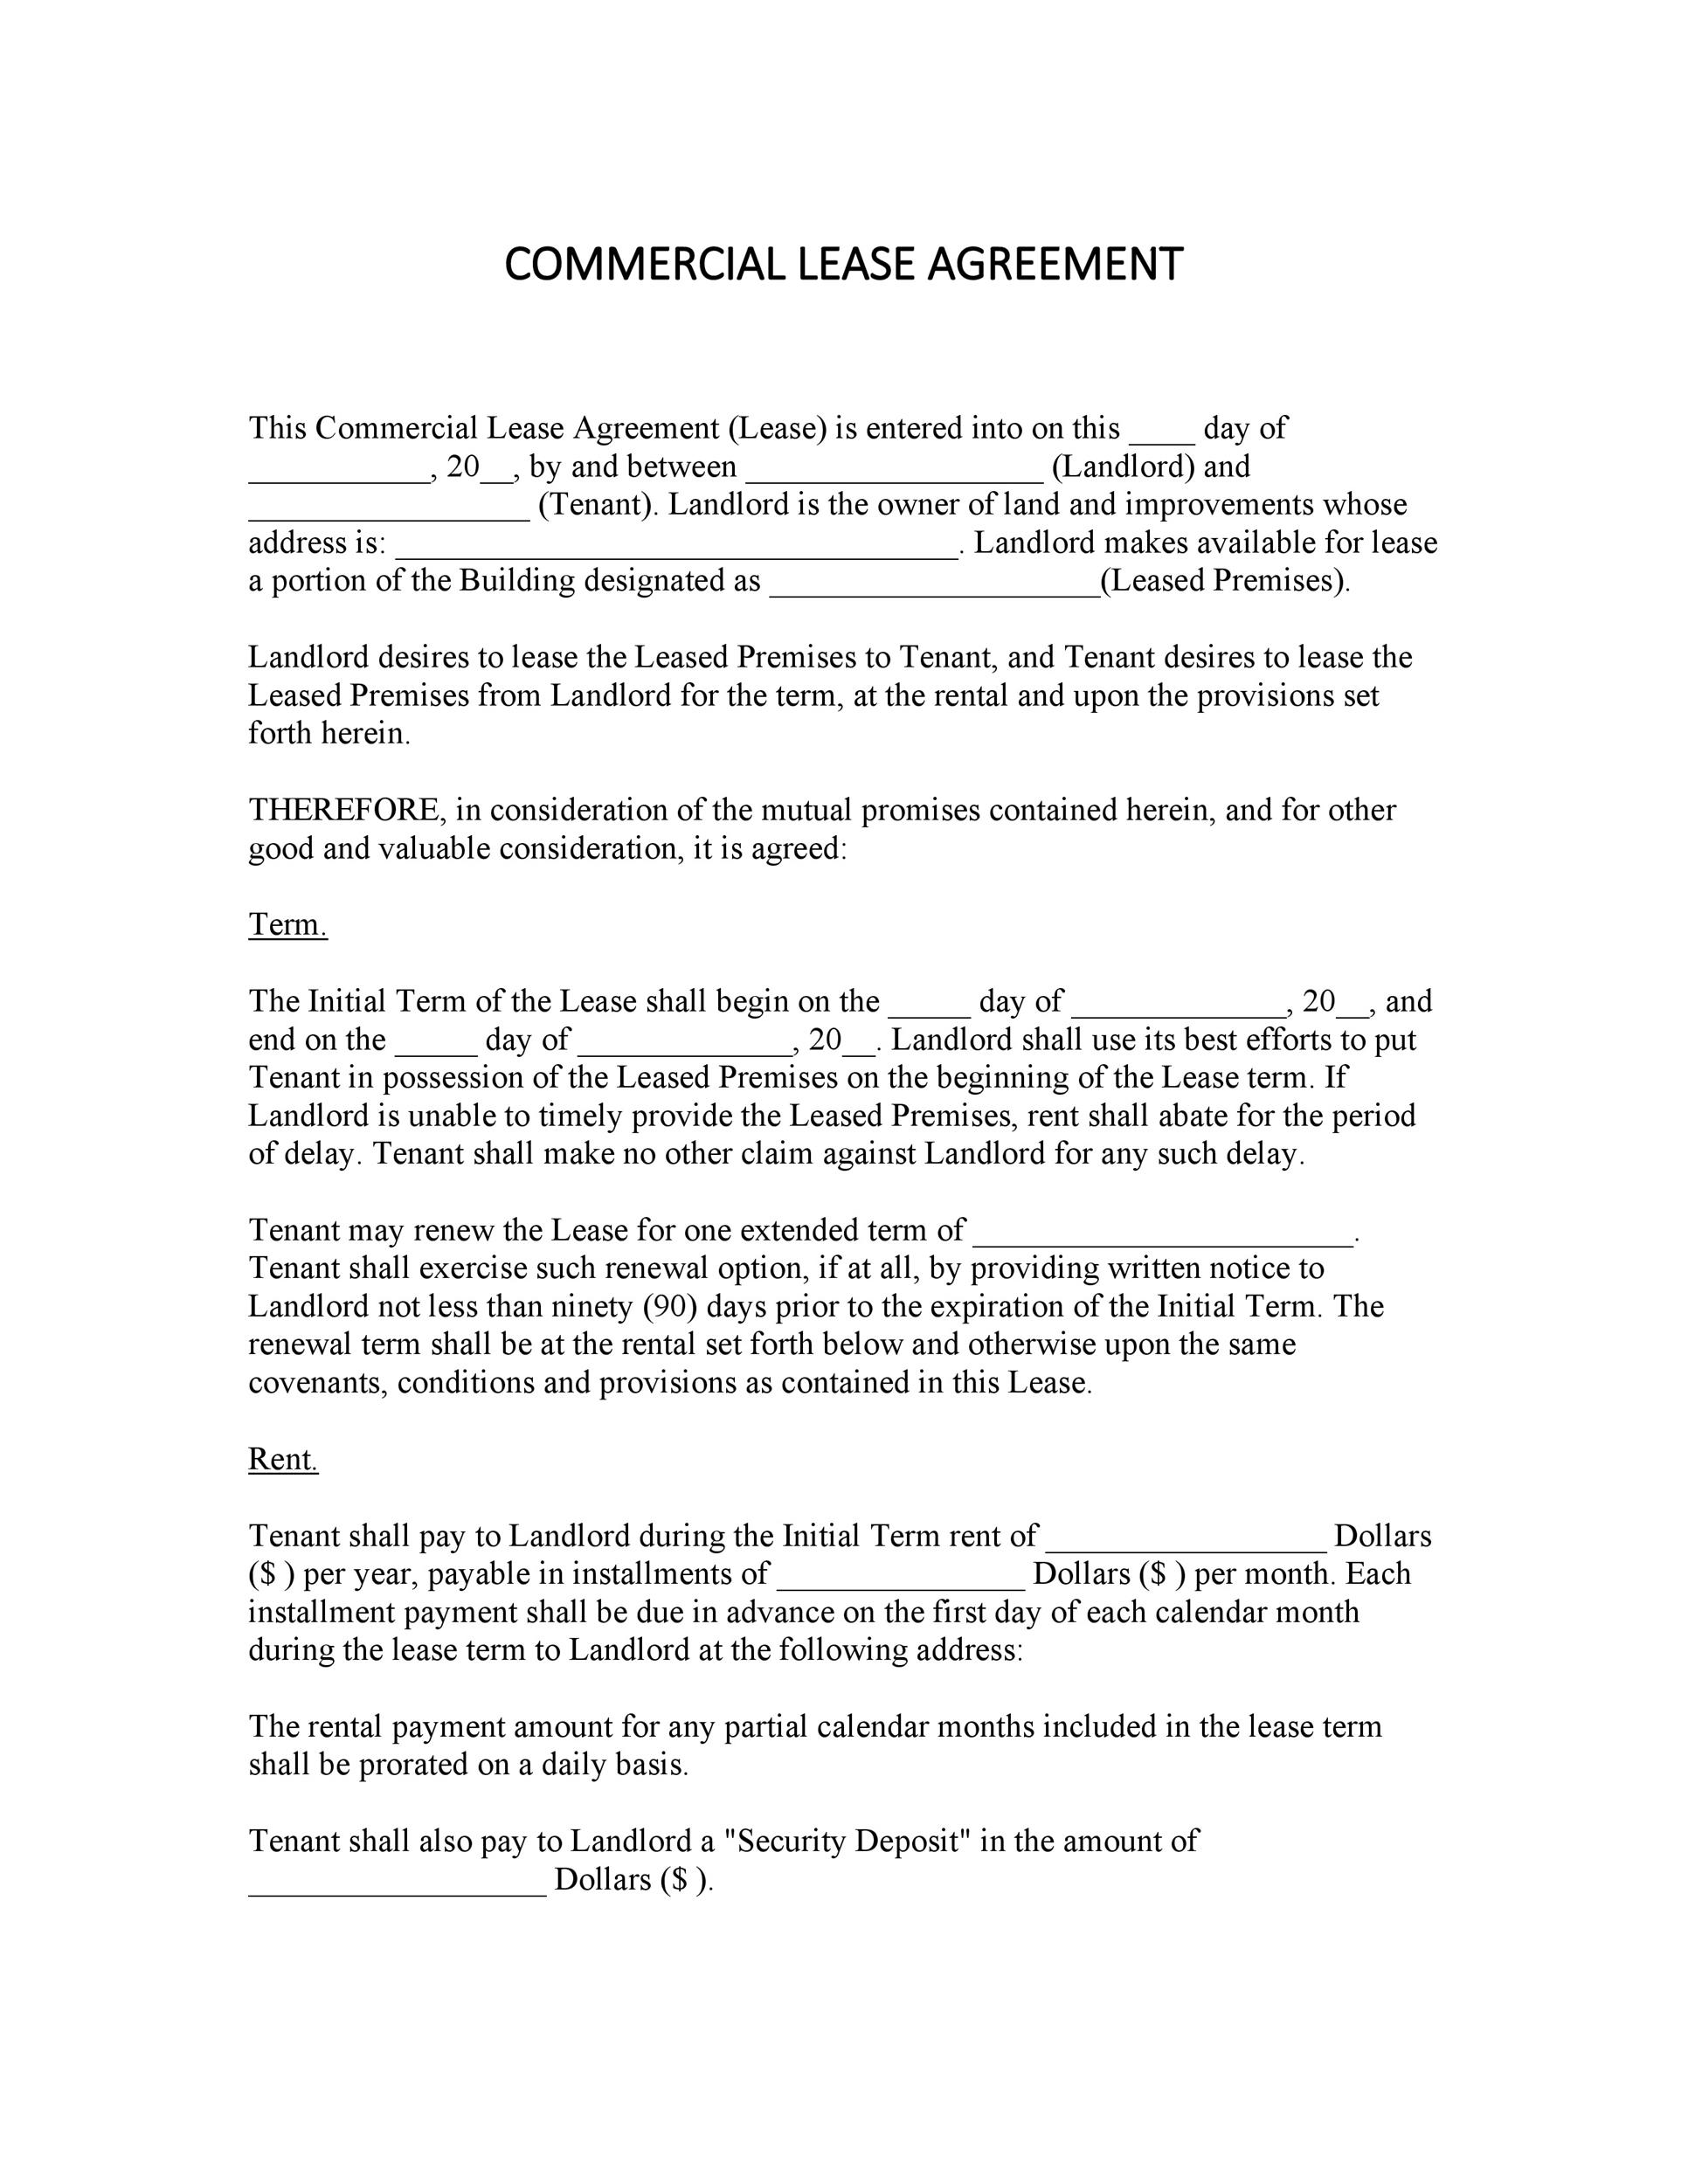 26 Free Commercial Lease Agreement Templates - Template Lab - ten terms to include in your lease